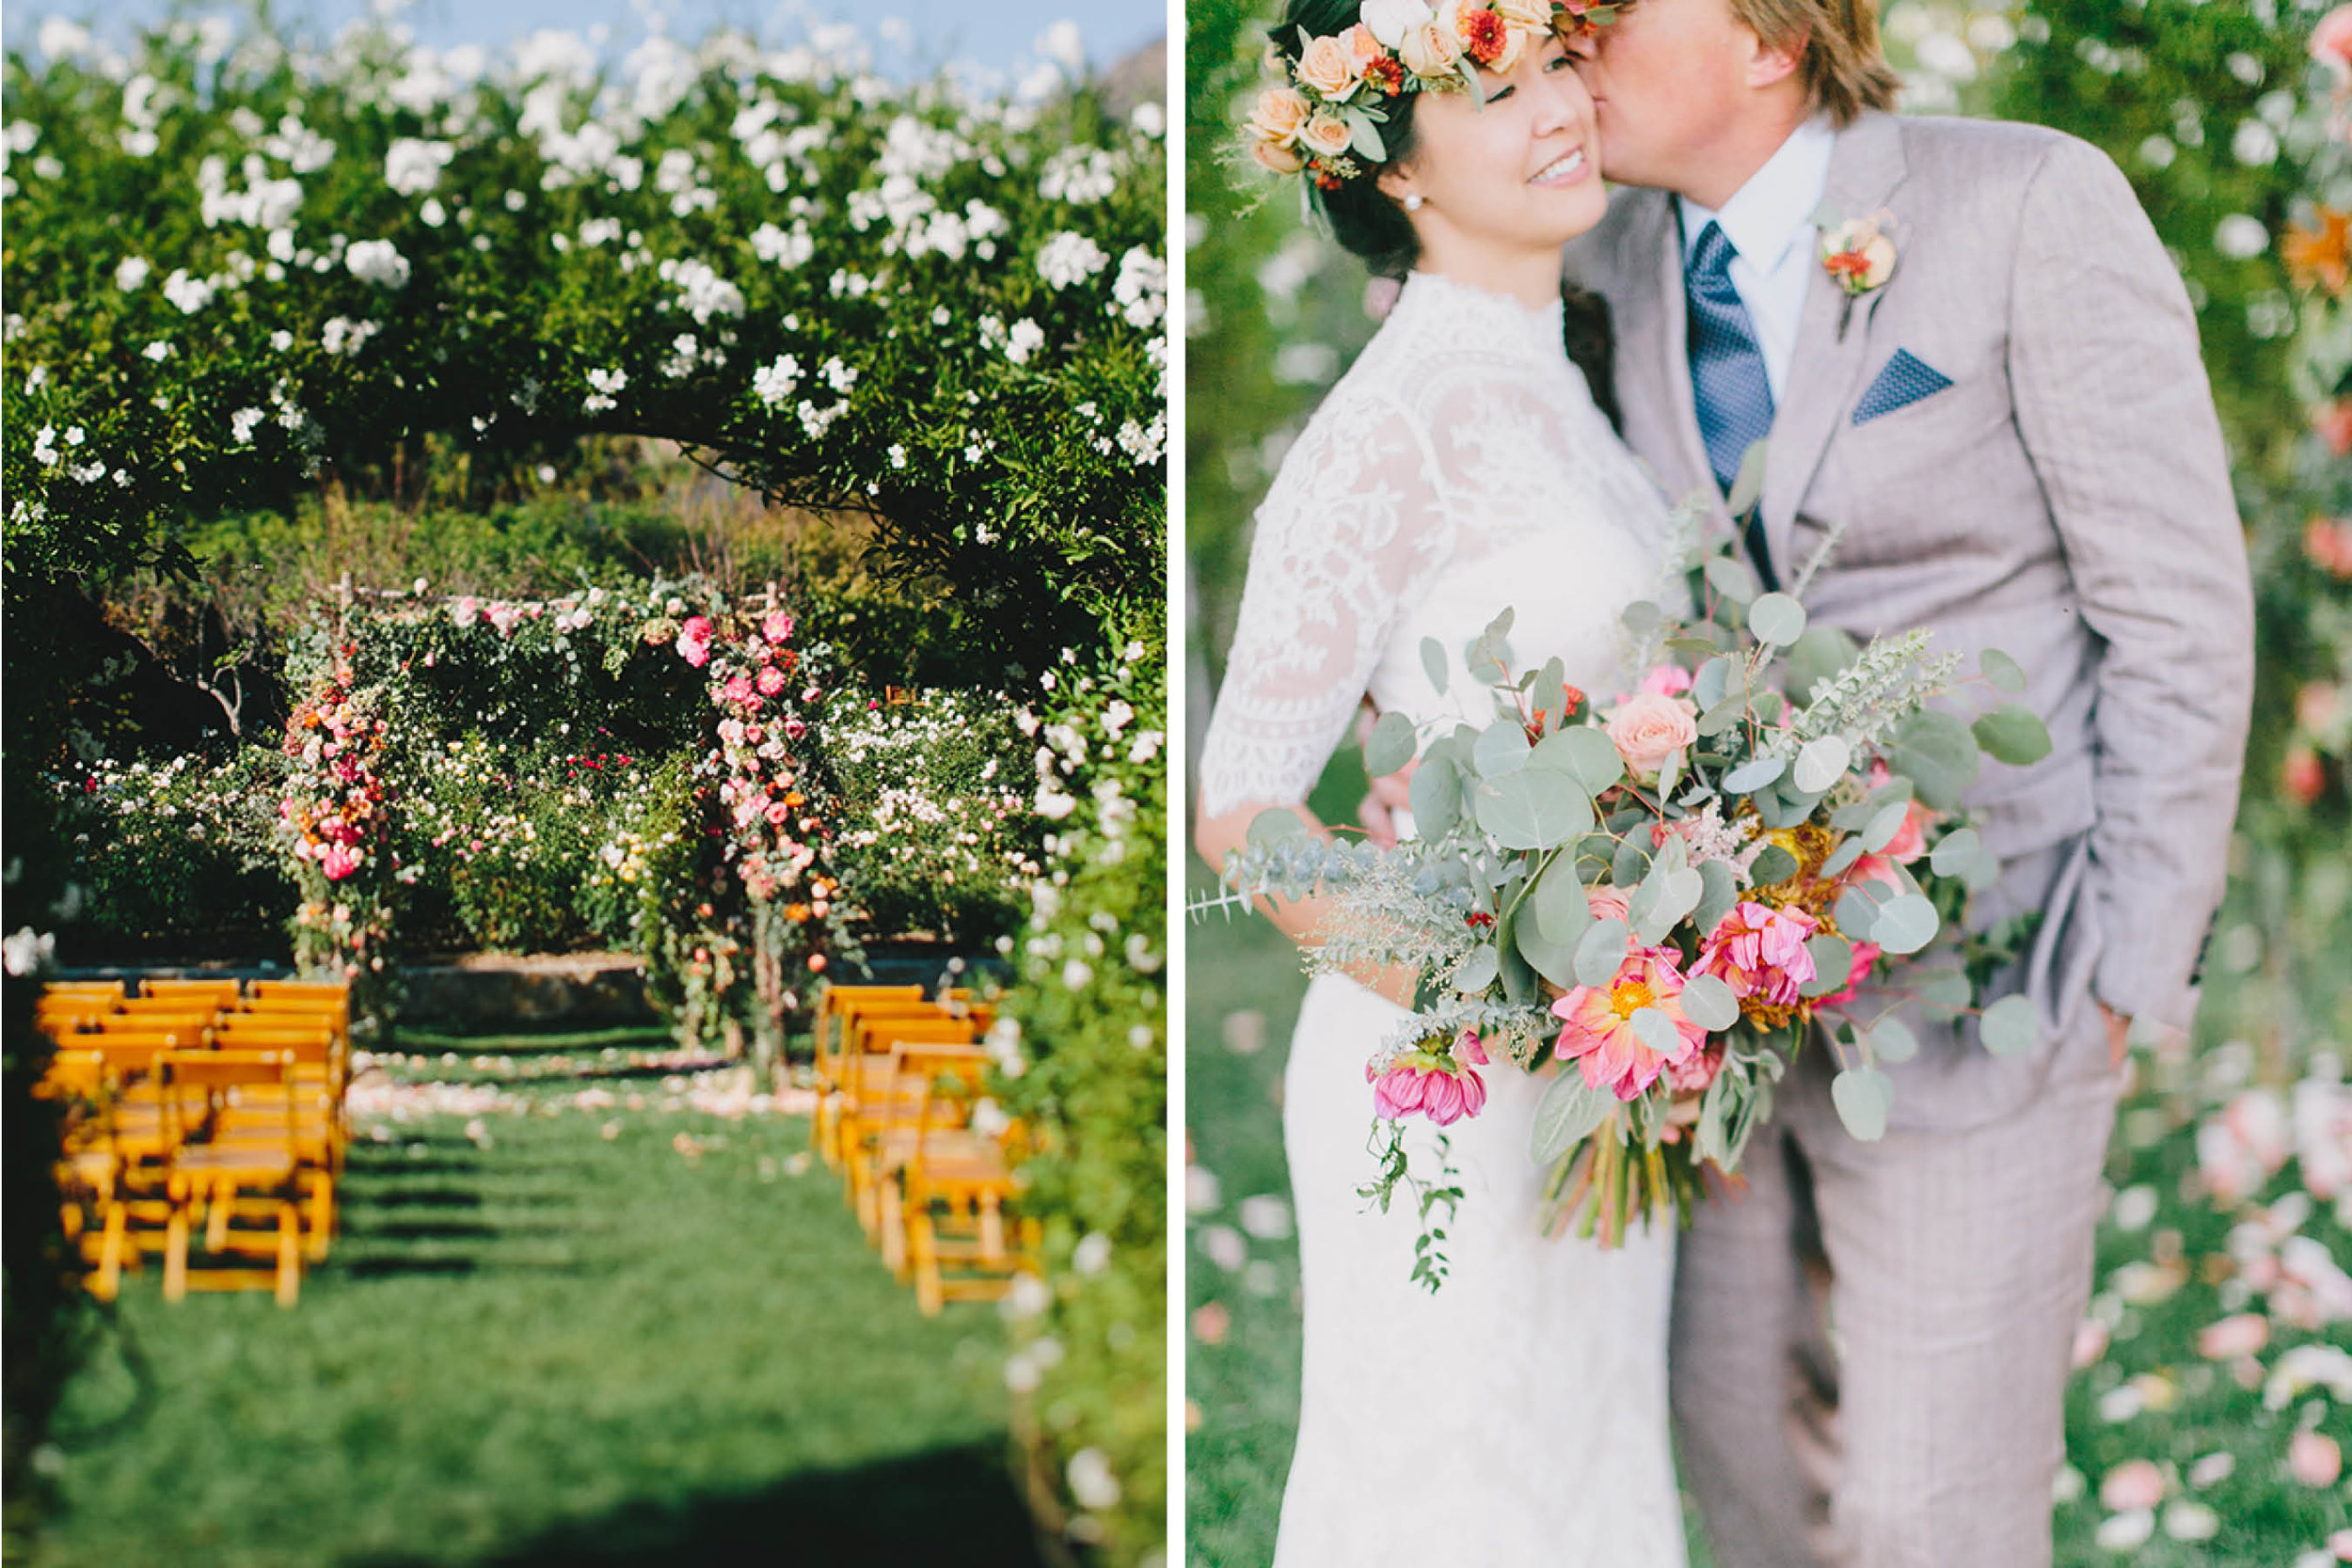 alegria-by-design-wedding-planning-planner-full-service-coordinator-day-of-san-ysidro-ranch-estate-montecito-santa-barbara-lavendar-spring-garden-floral (11).jpg